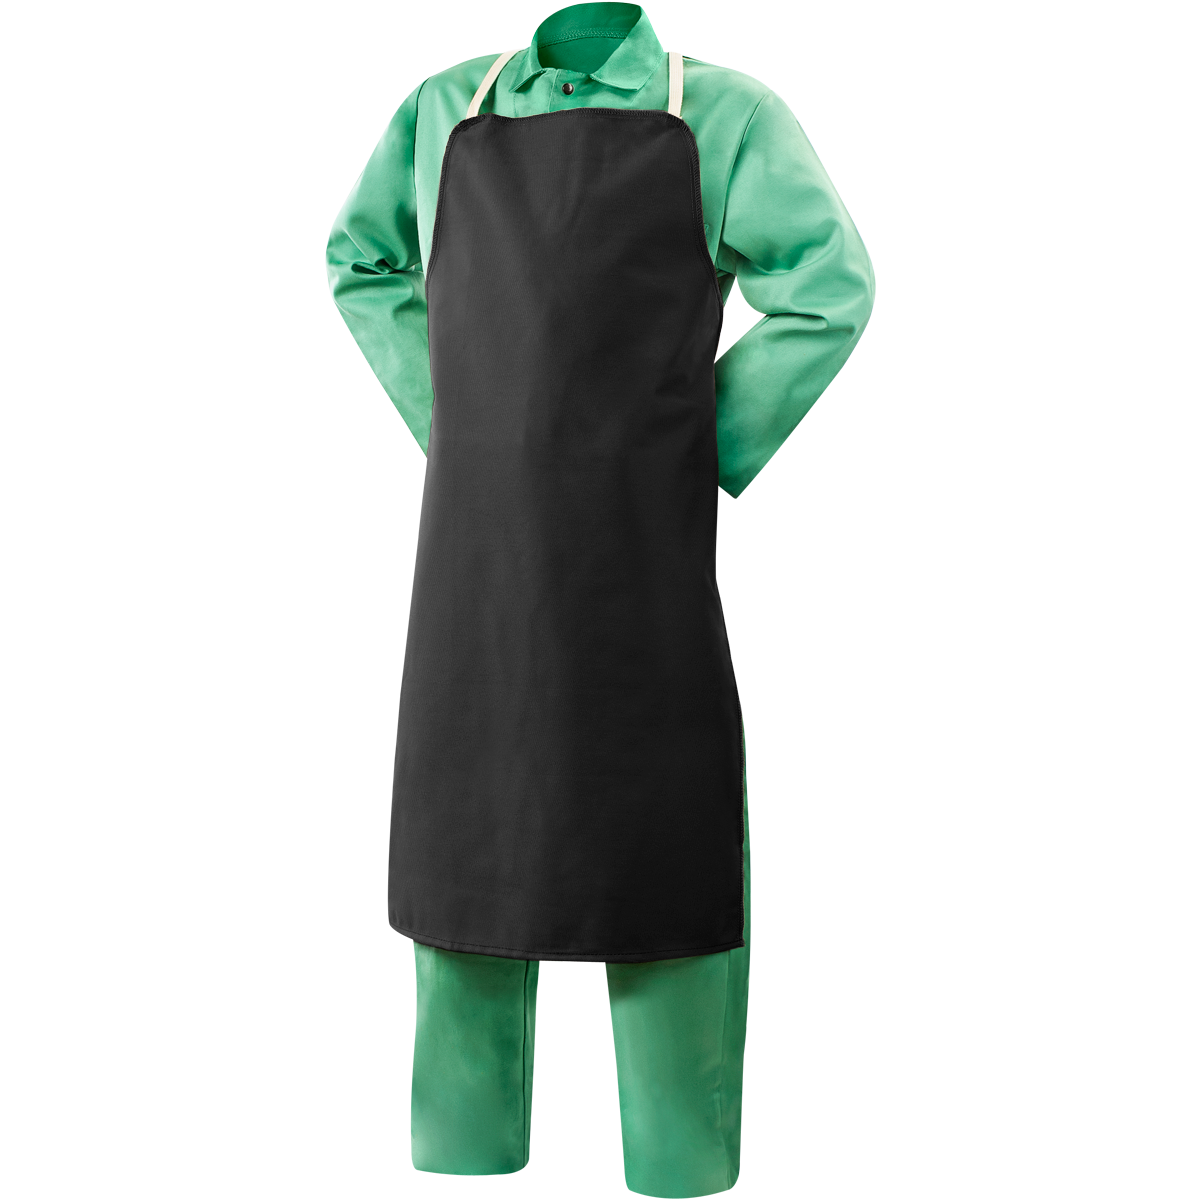 Bib Apron With Shoulder And Waist Straps PNG Image